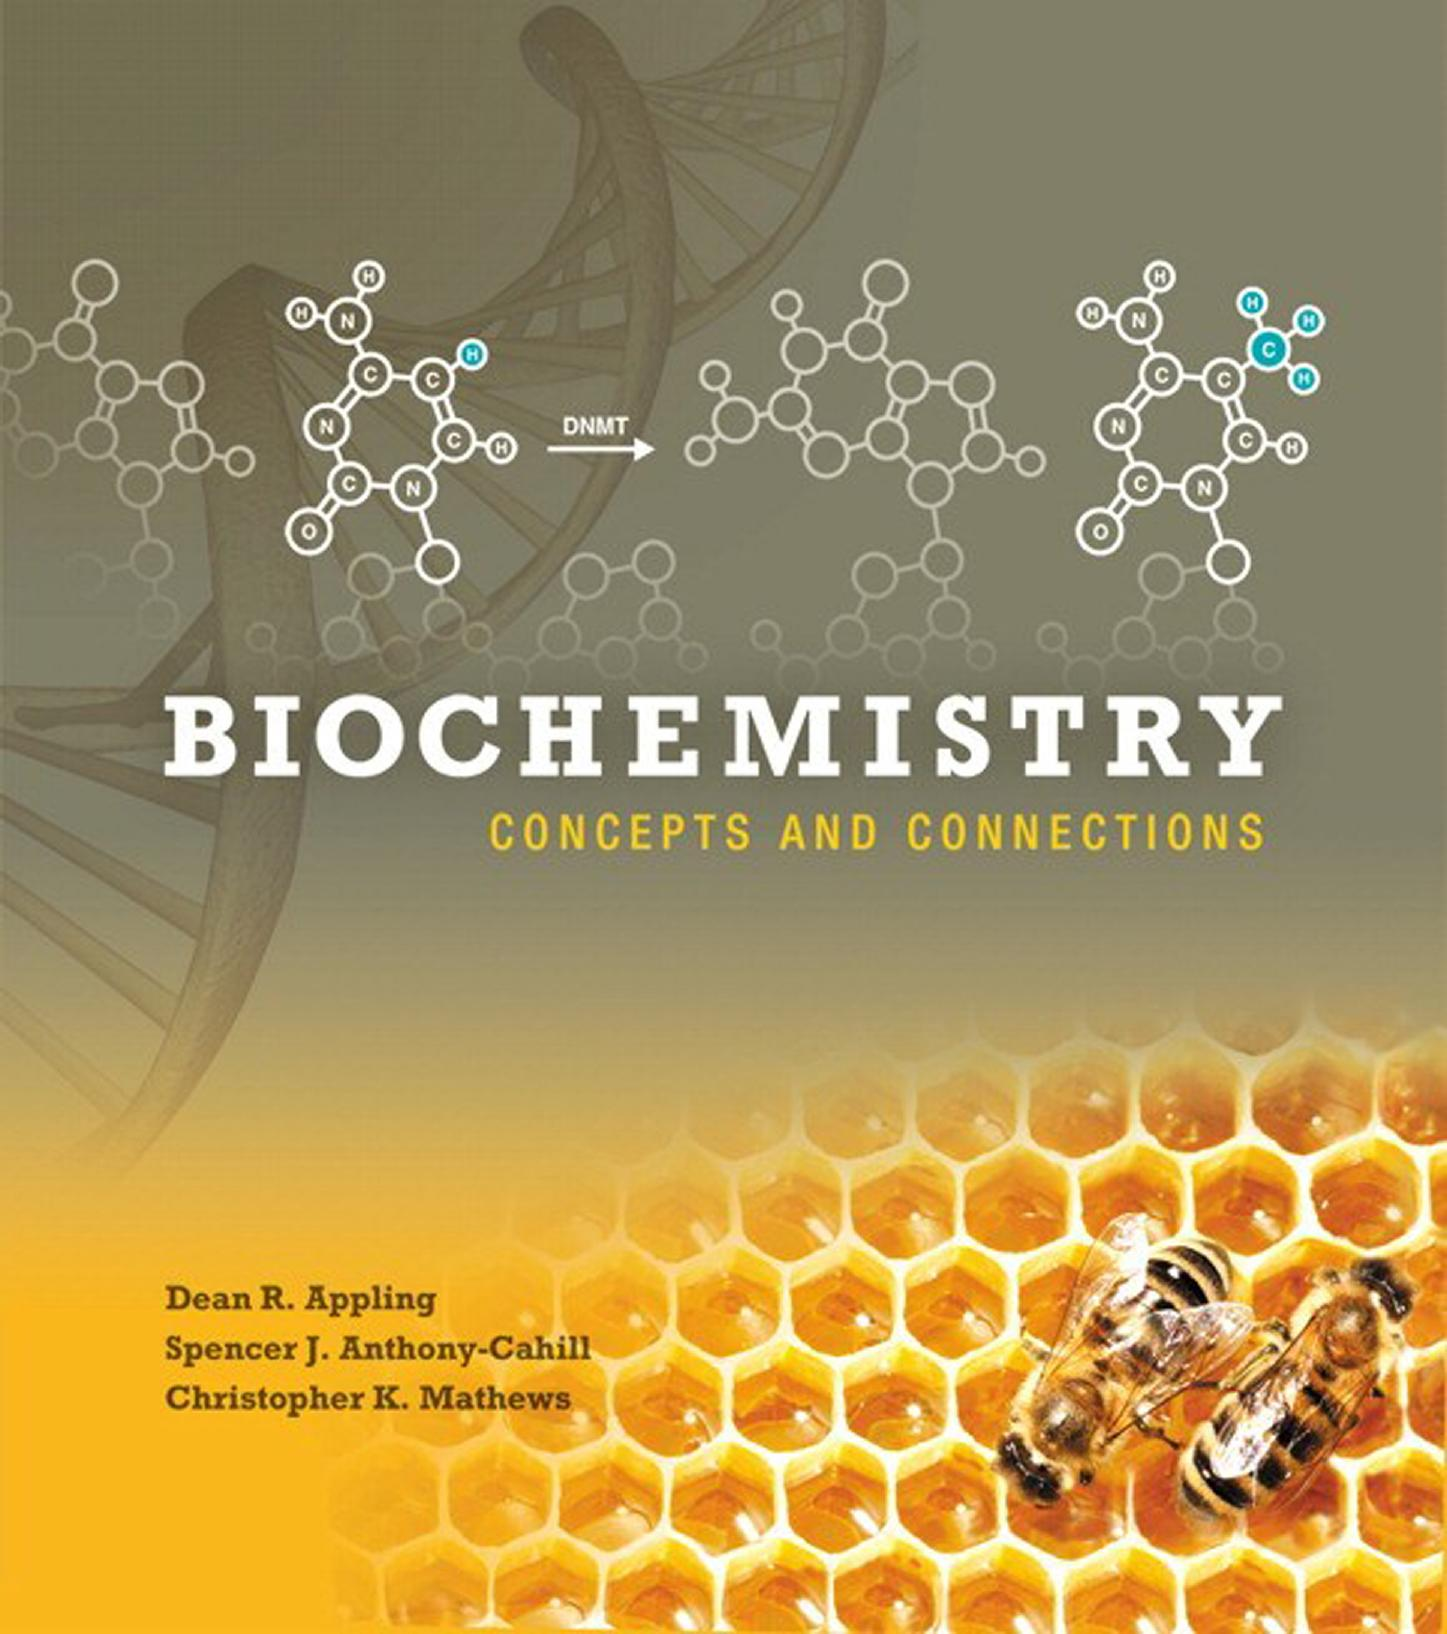 Biochemistry Concepts And Connections Pdf